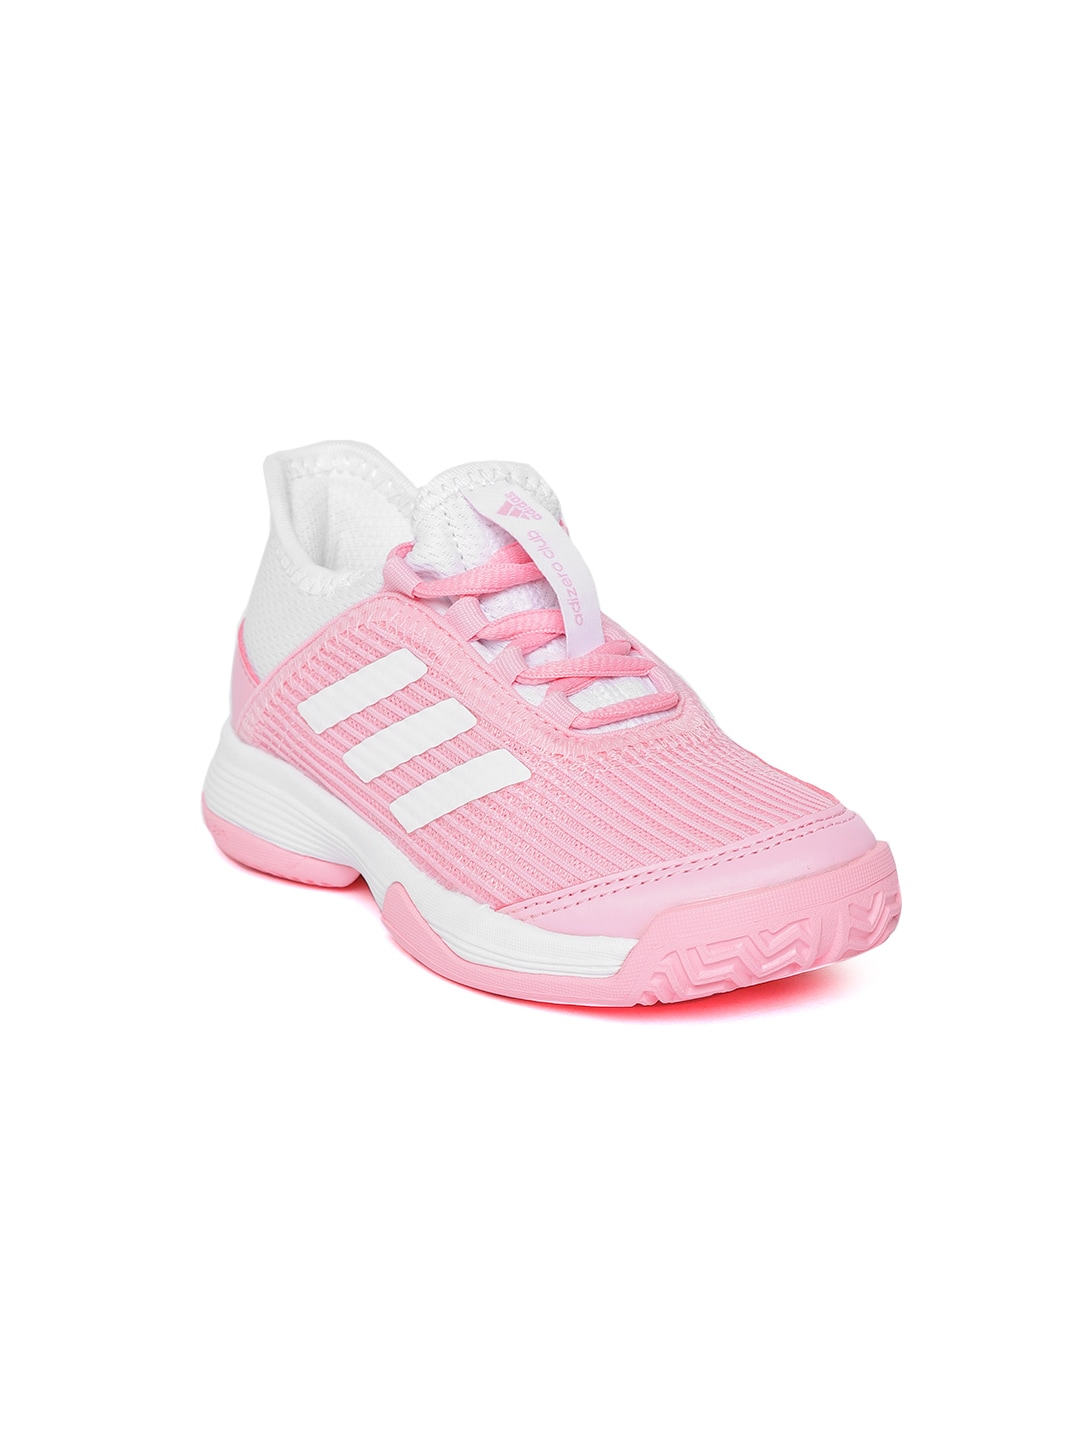 6b0008b929a Adidas Non Marking Shoes - Buy Adidas Non Marking Shoes online in India